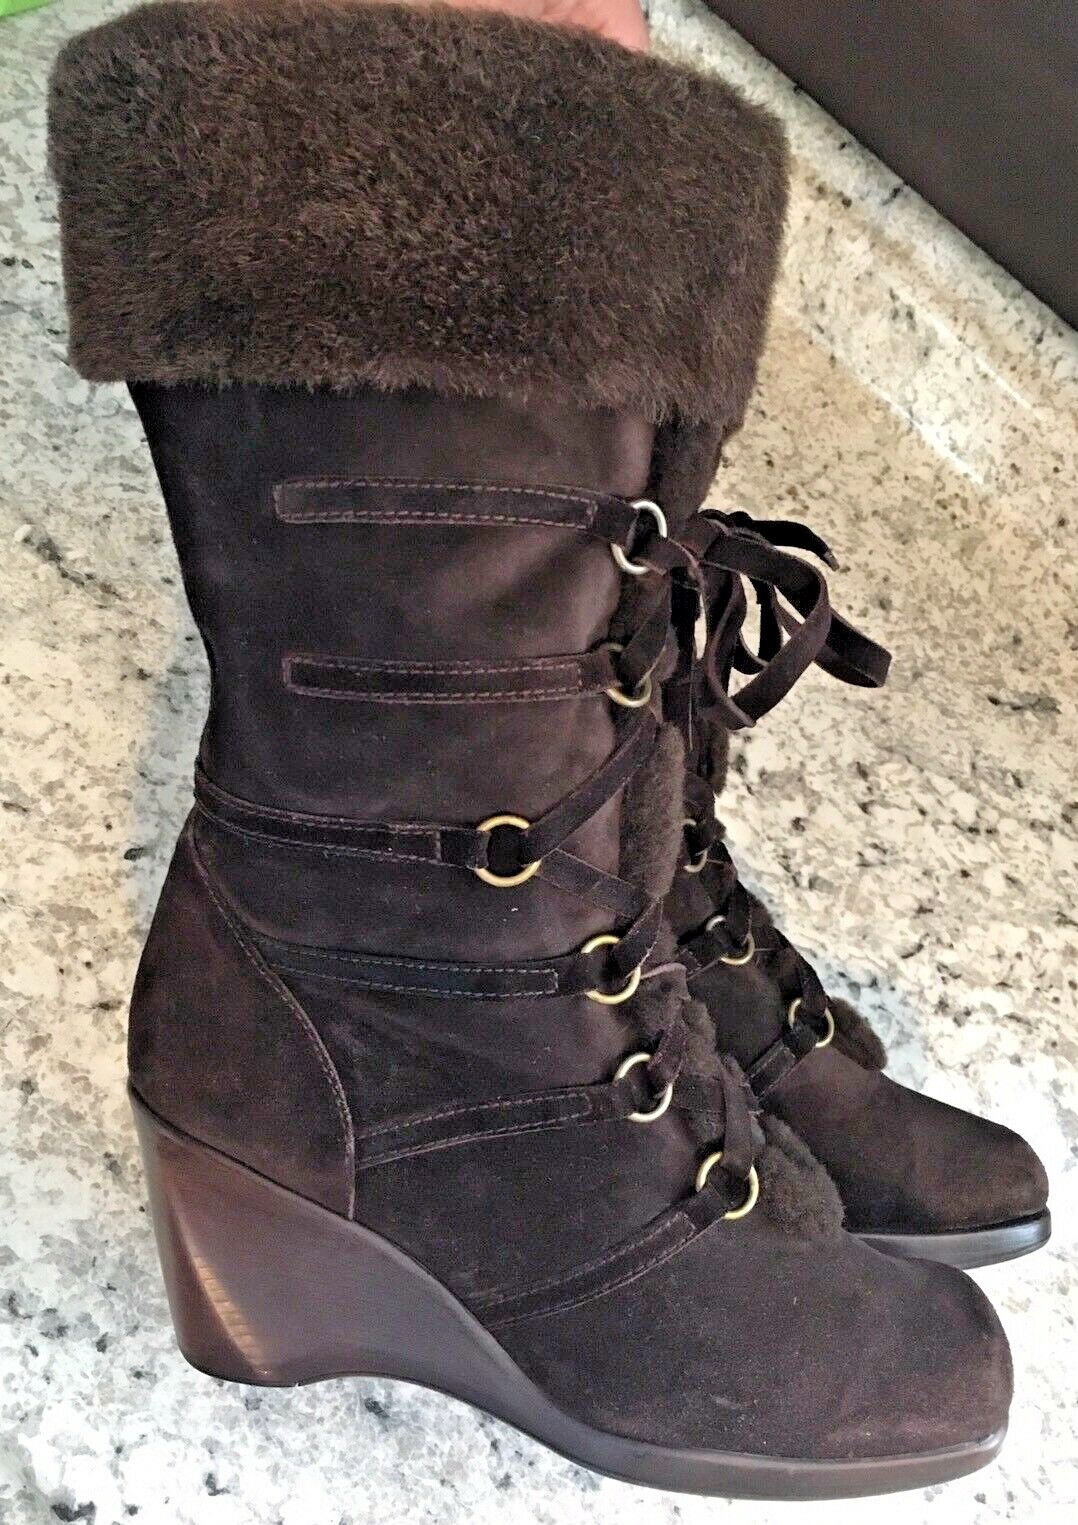 STUART WEITZMAN Womens Mid Calf Boots Brown Leather soft fur-lined Size 8.5